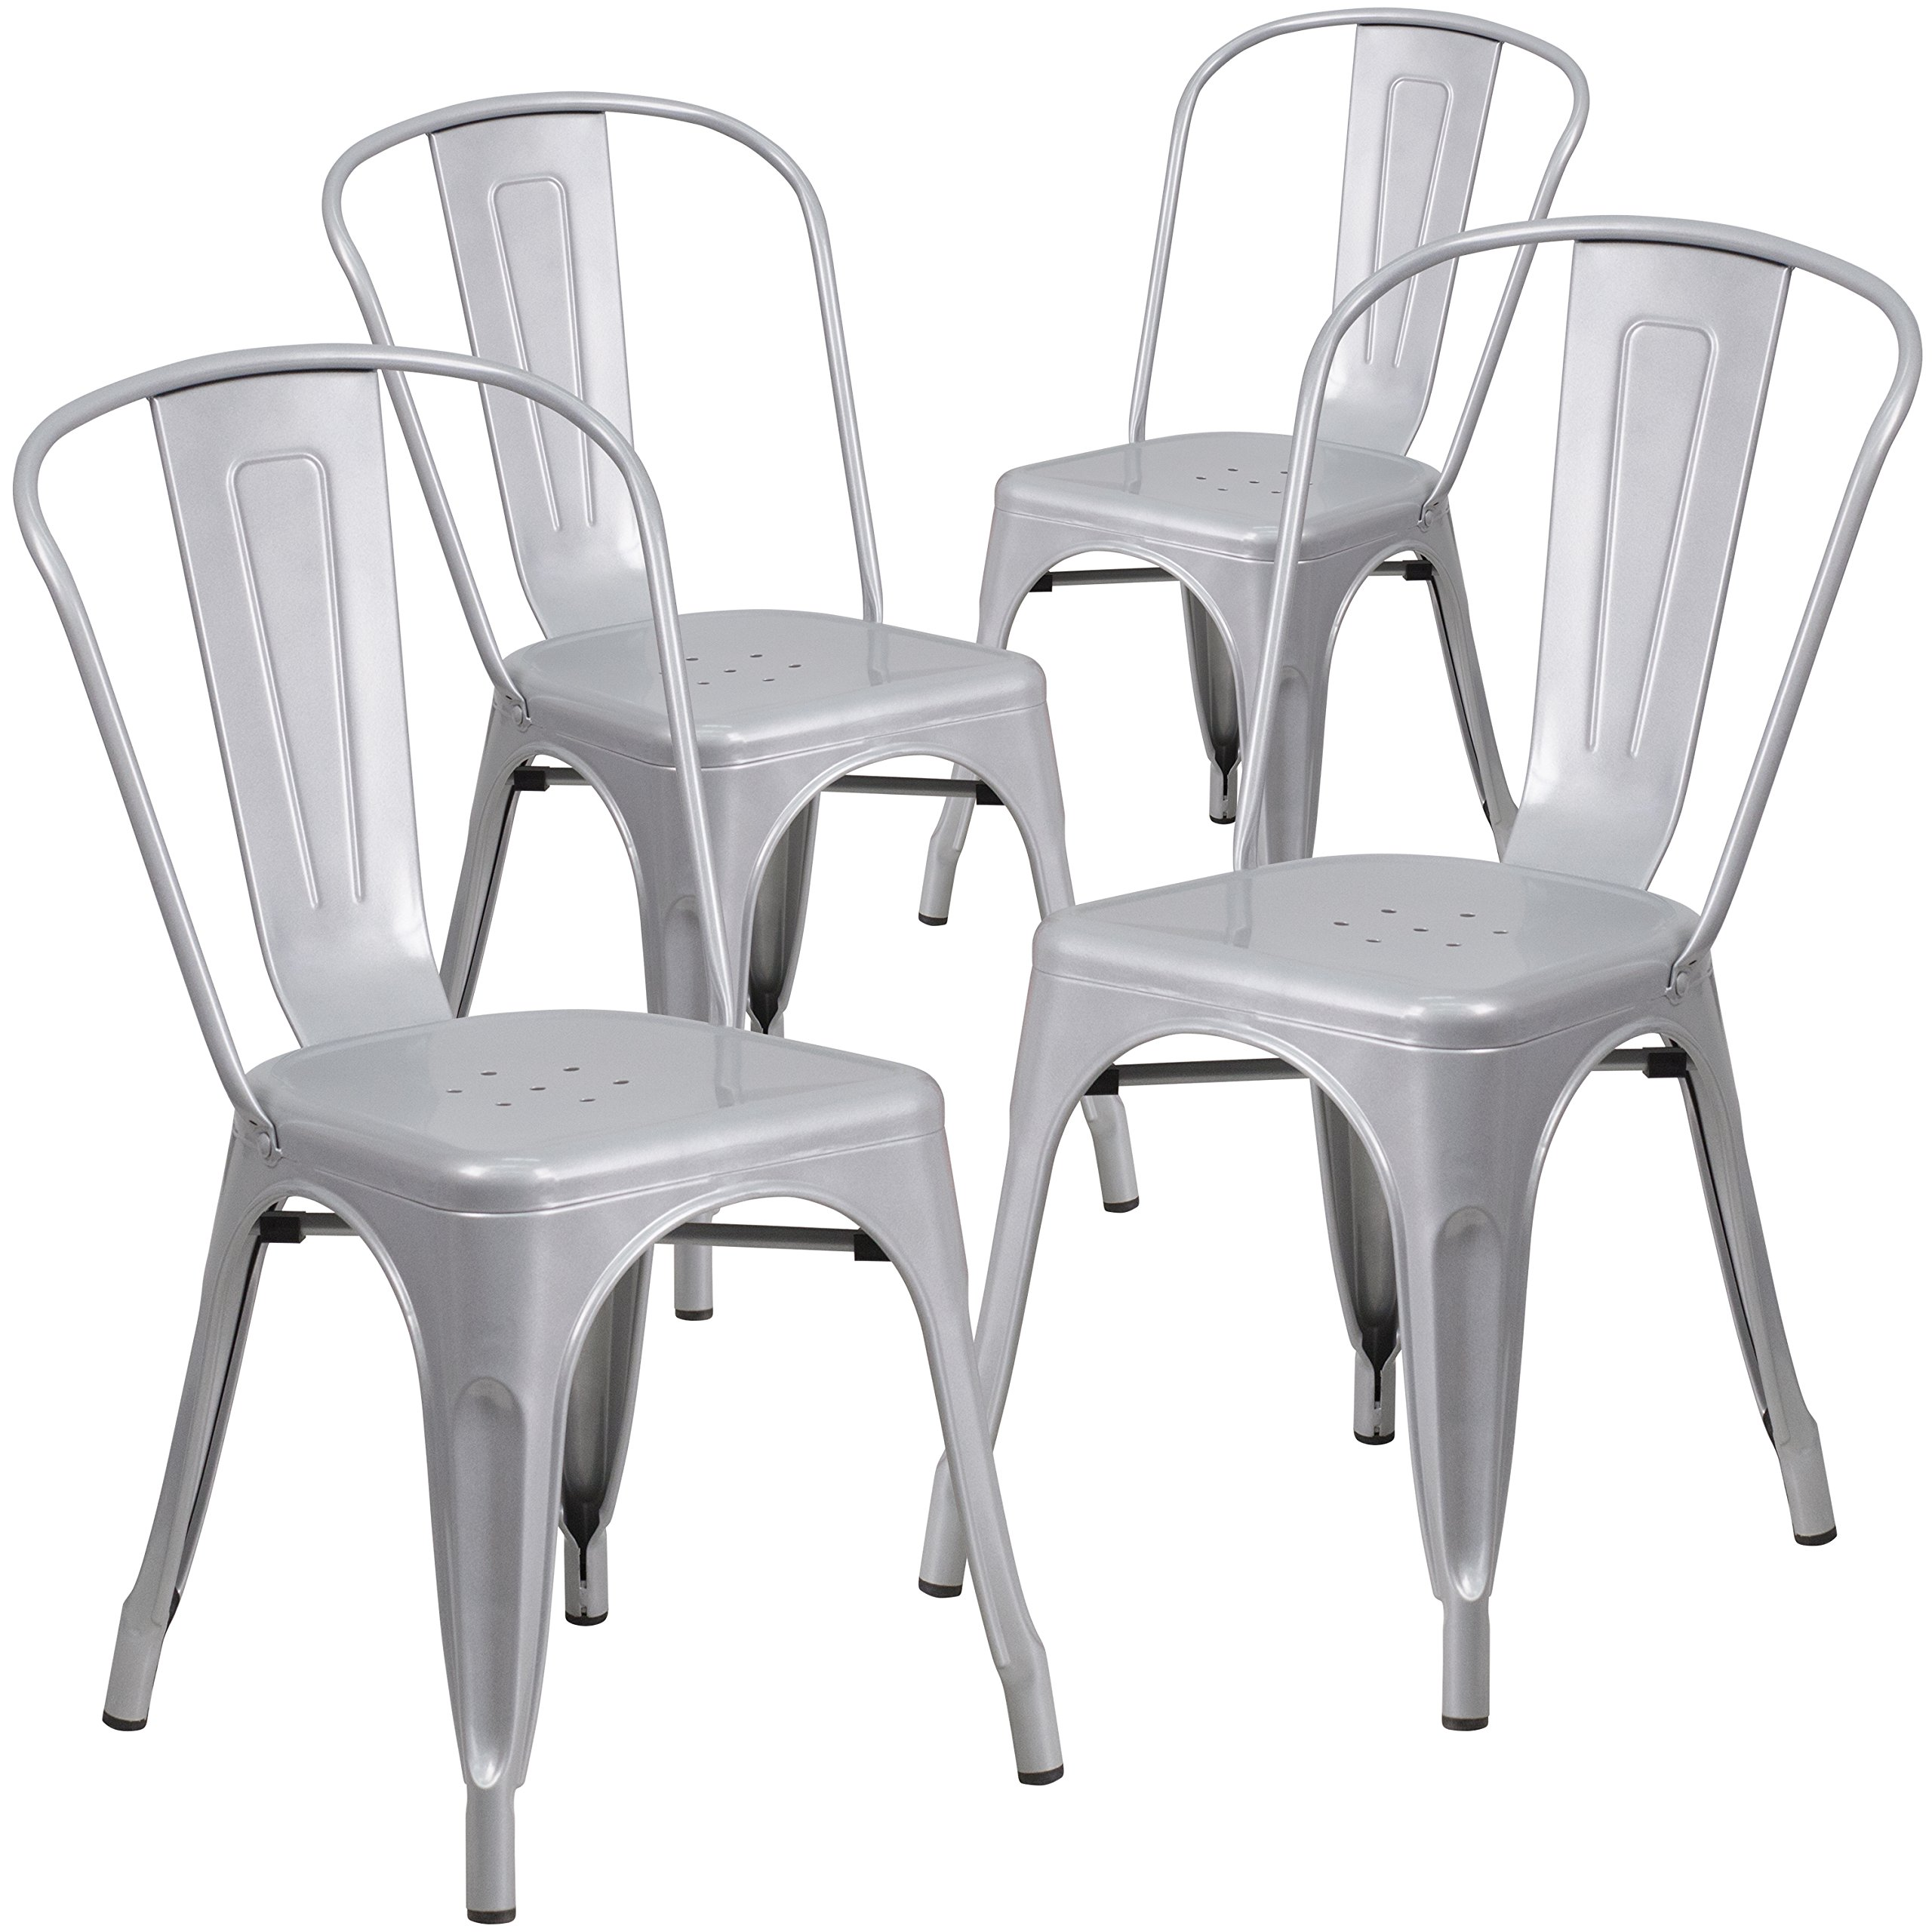 Flash Furniture 4 Pk. Silver Metal Indoor-Outdoor Stackable Chair by Flash Furniture